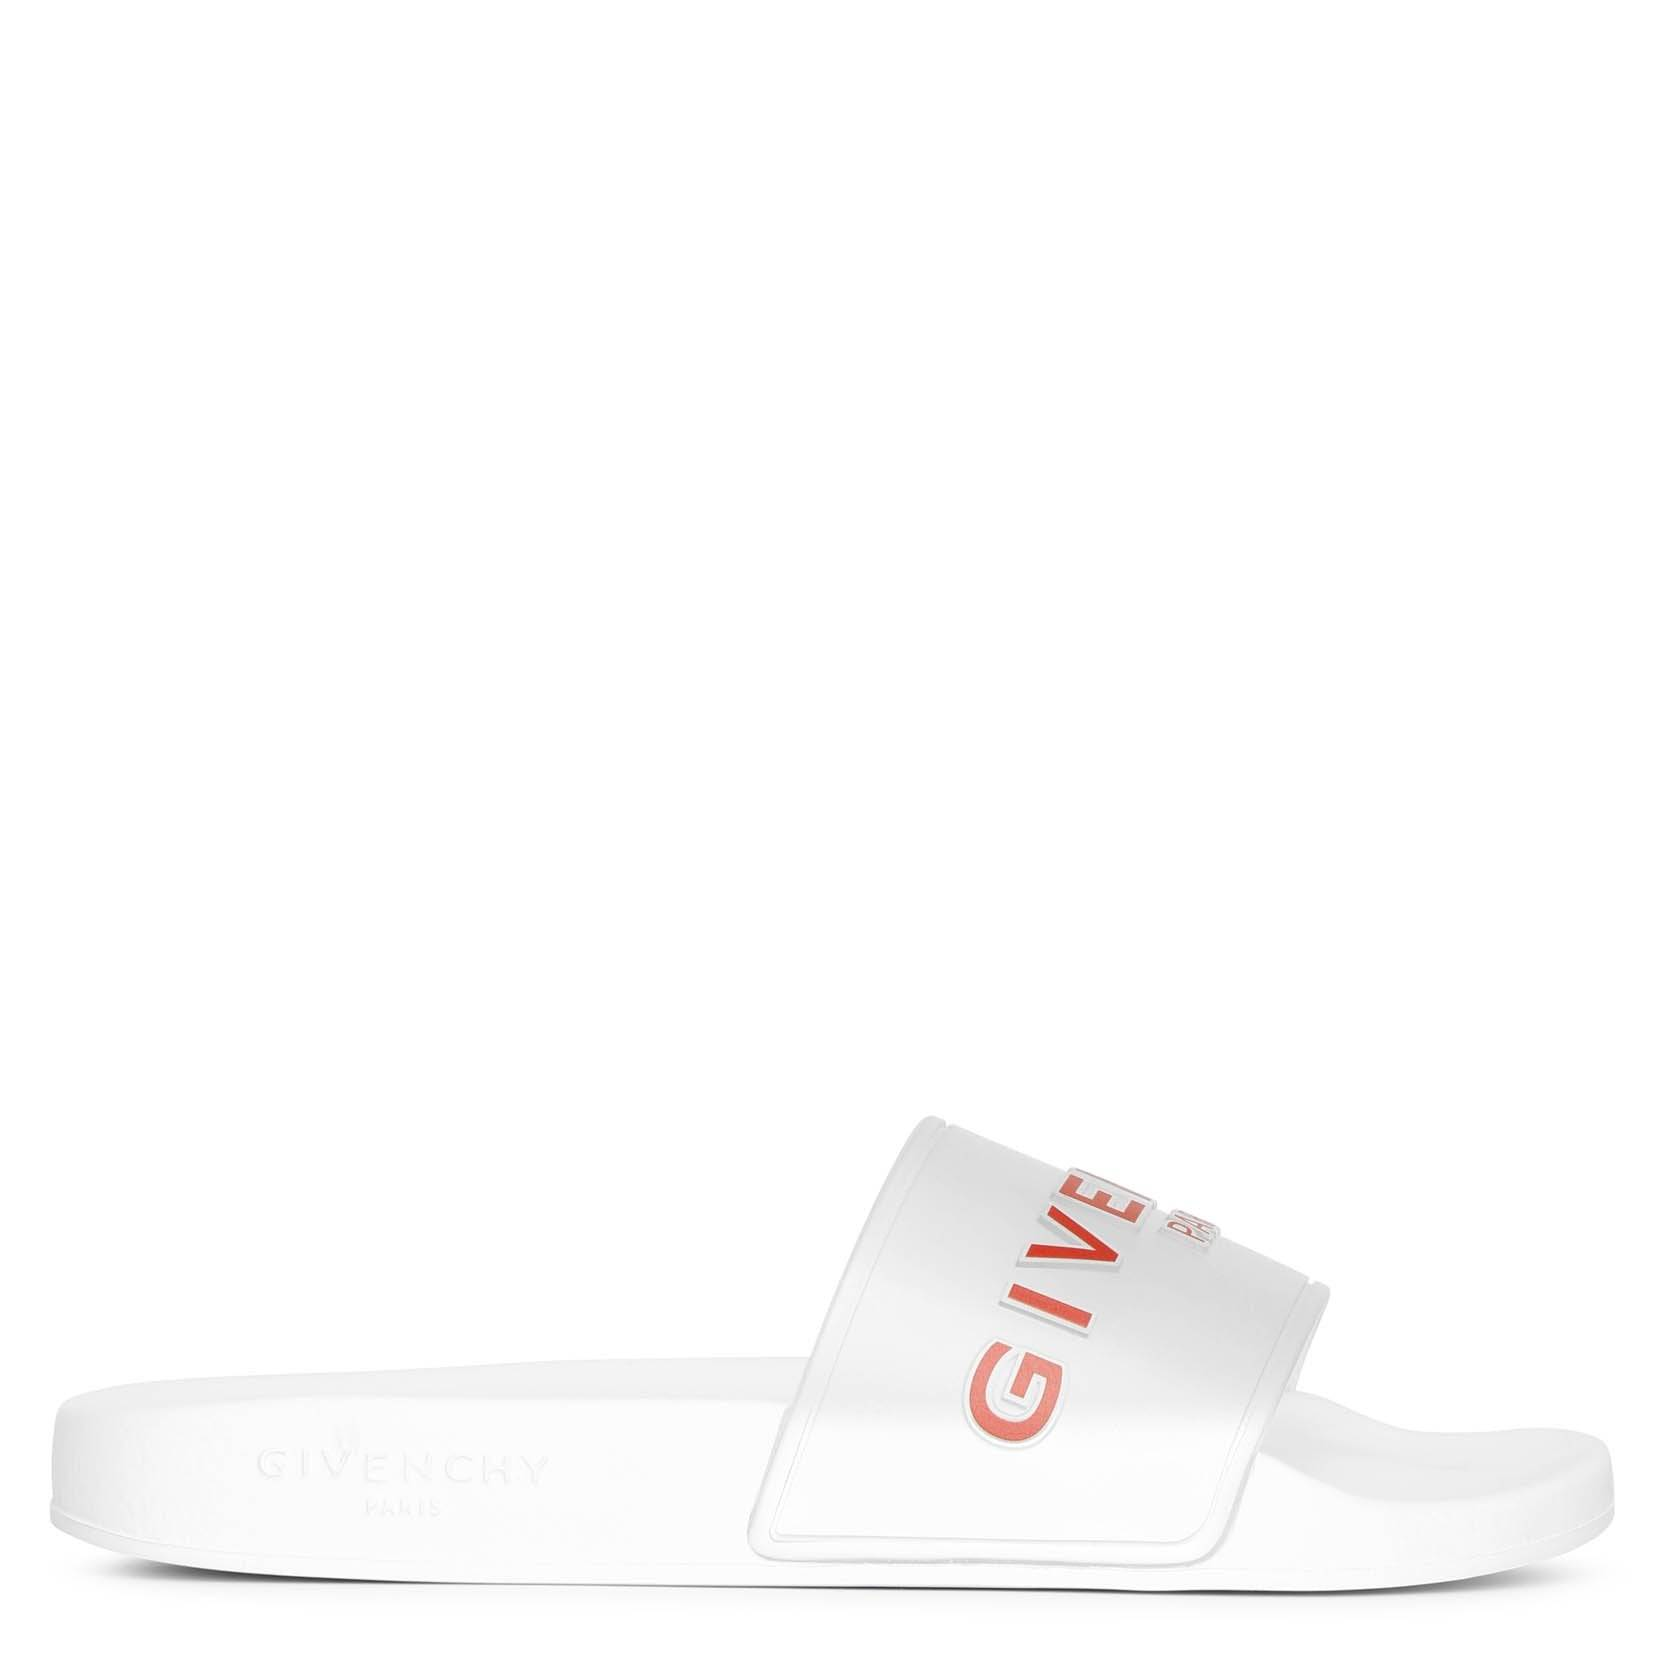 Givenchy Clear and white rubber slides sandals  - white/transparent/red - female - Size: 37